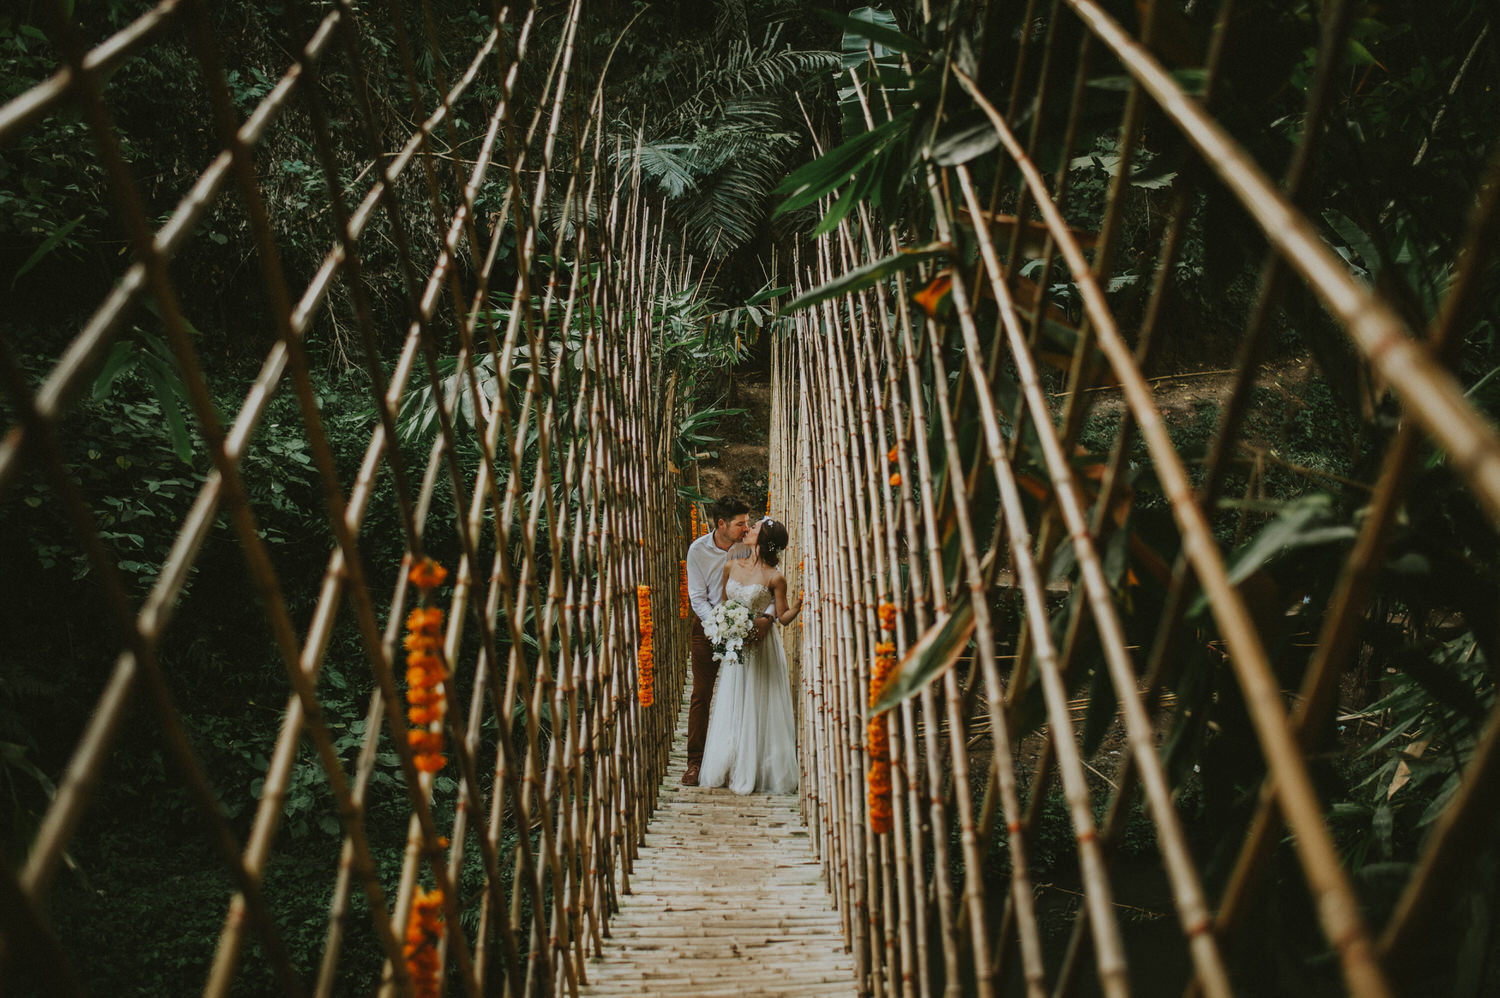 bali-wedding-ubud-wedding-wedding-destination-diktatphotography-kadek-artayasa-elaine-and-glenn-102